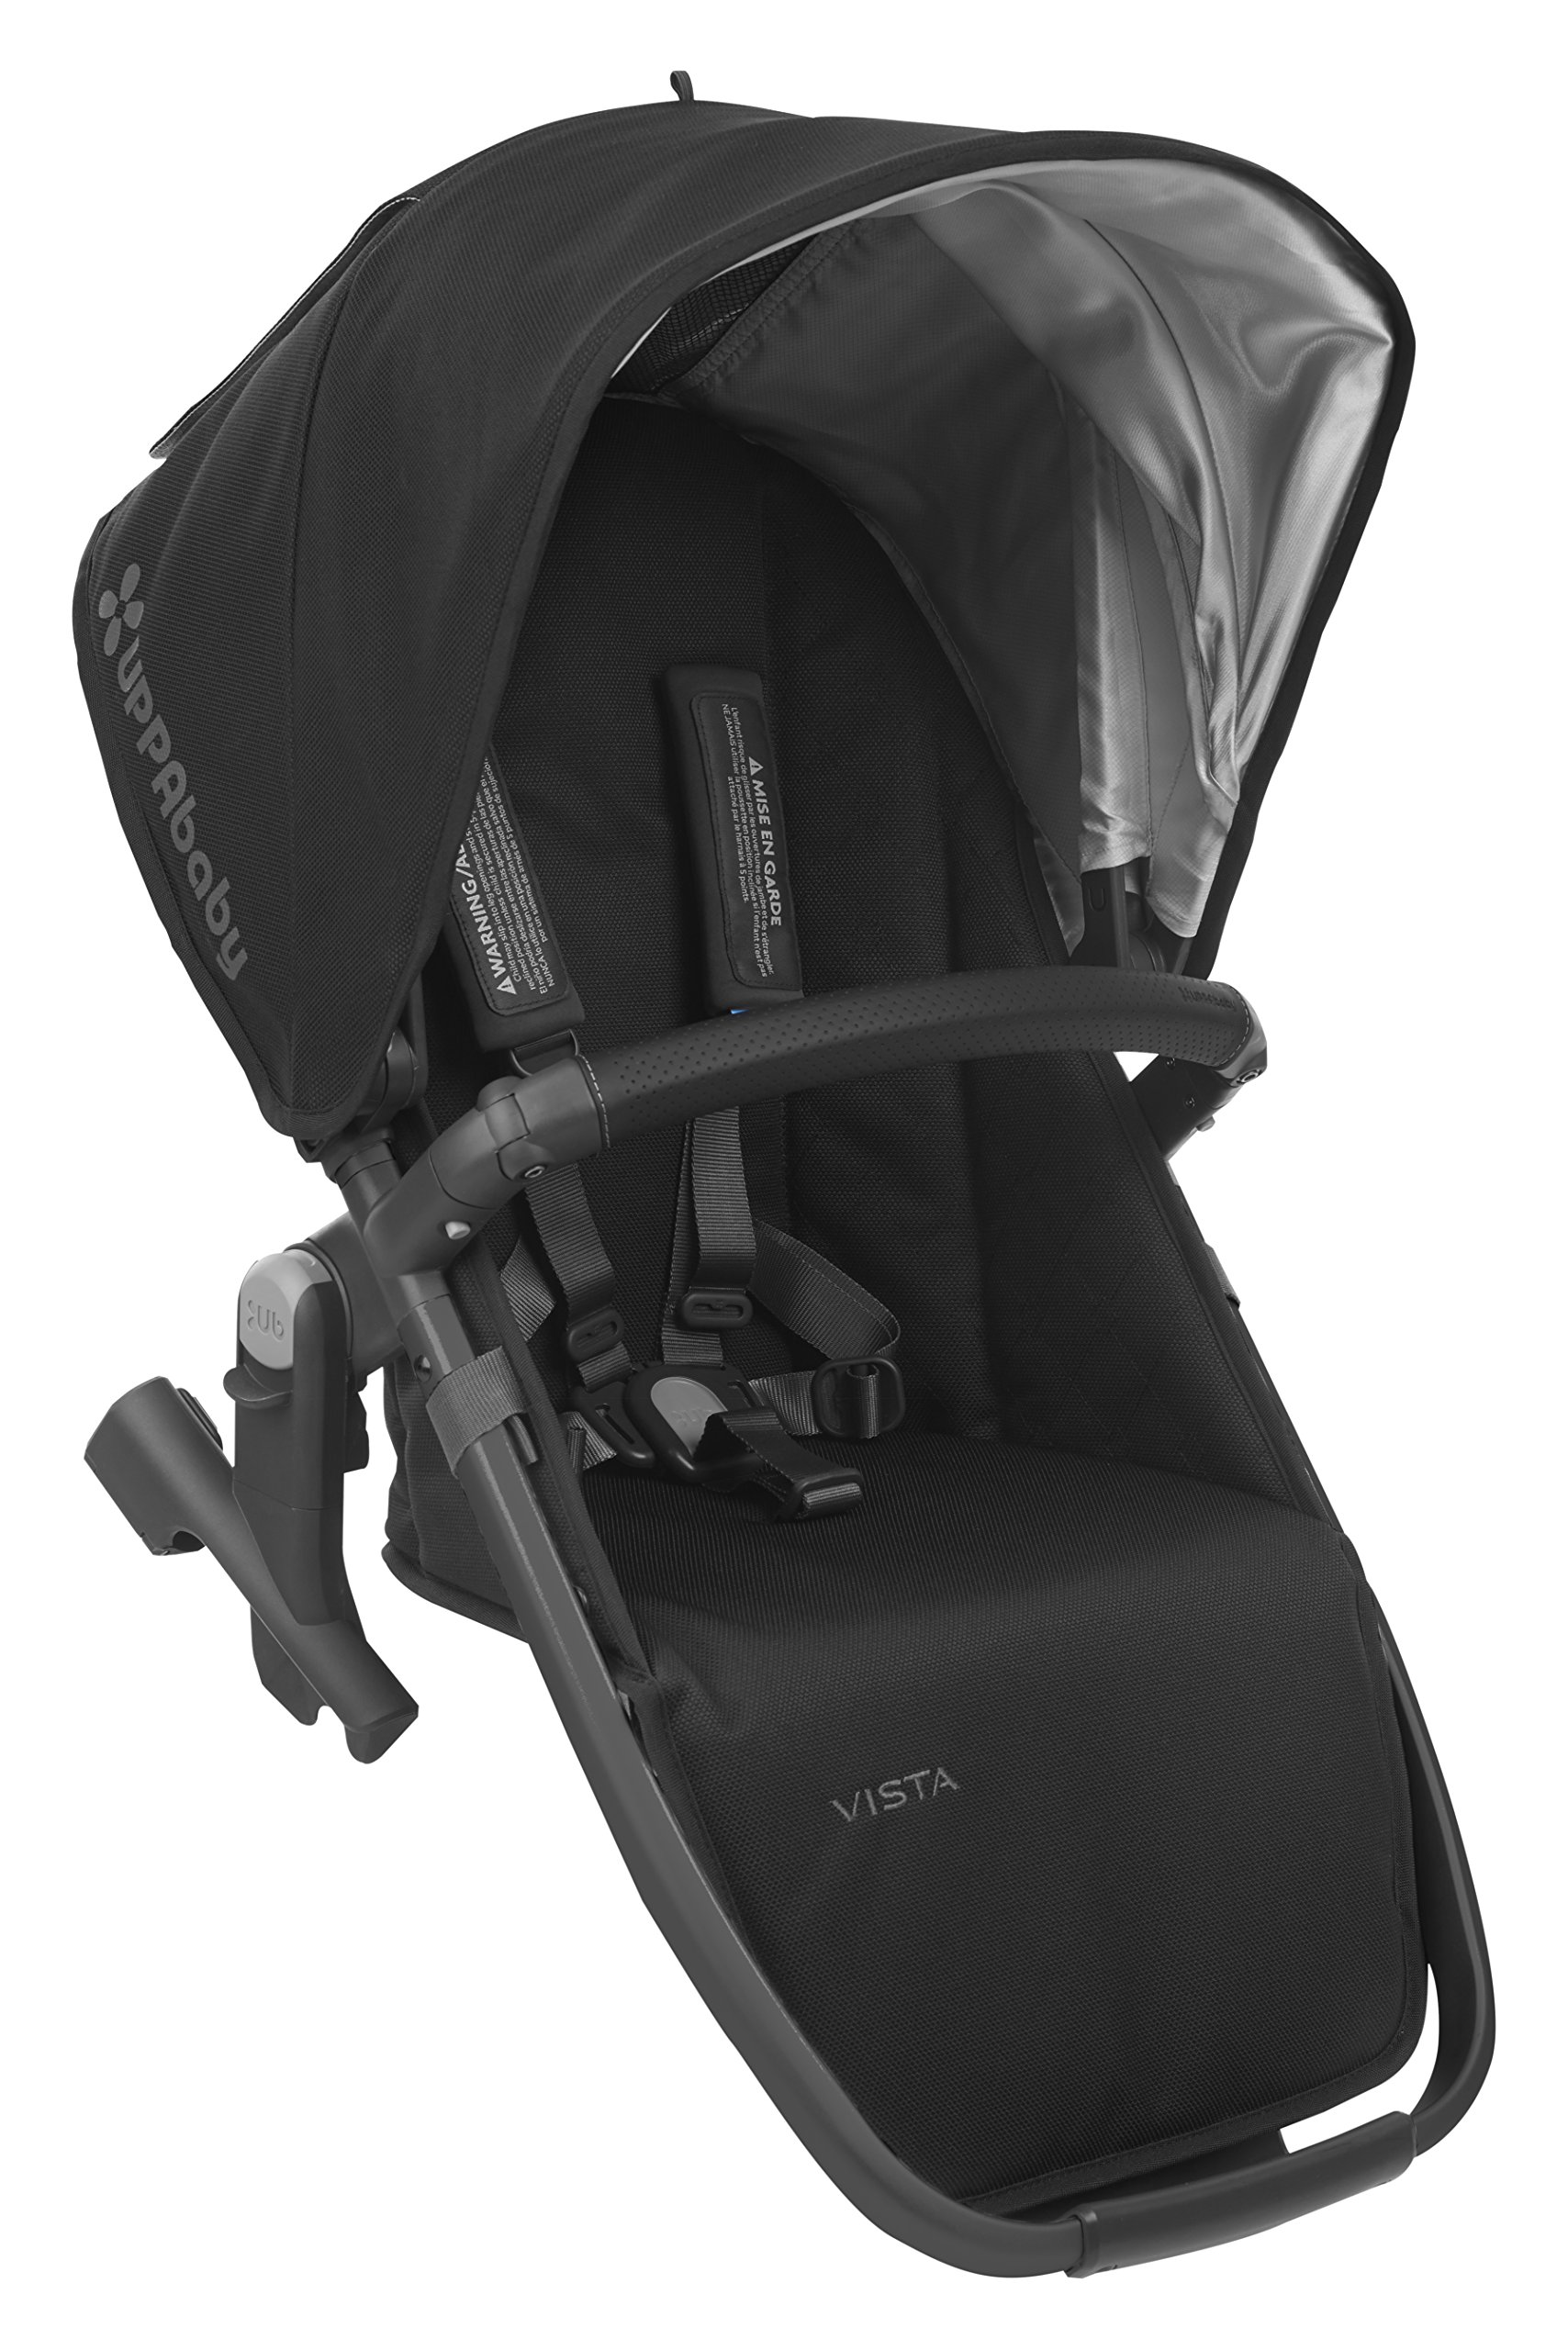 UPPAbaby VISTA RumbleSeat, Black/Carbon/Leather, Jake